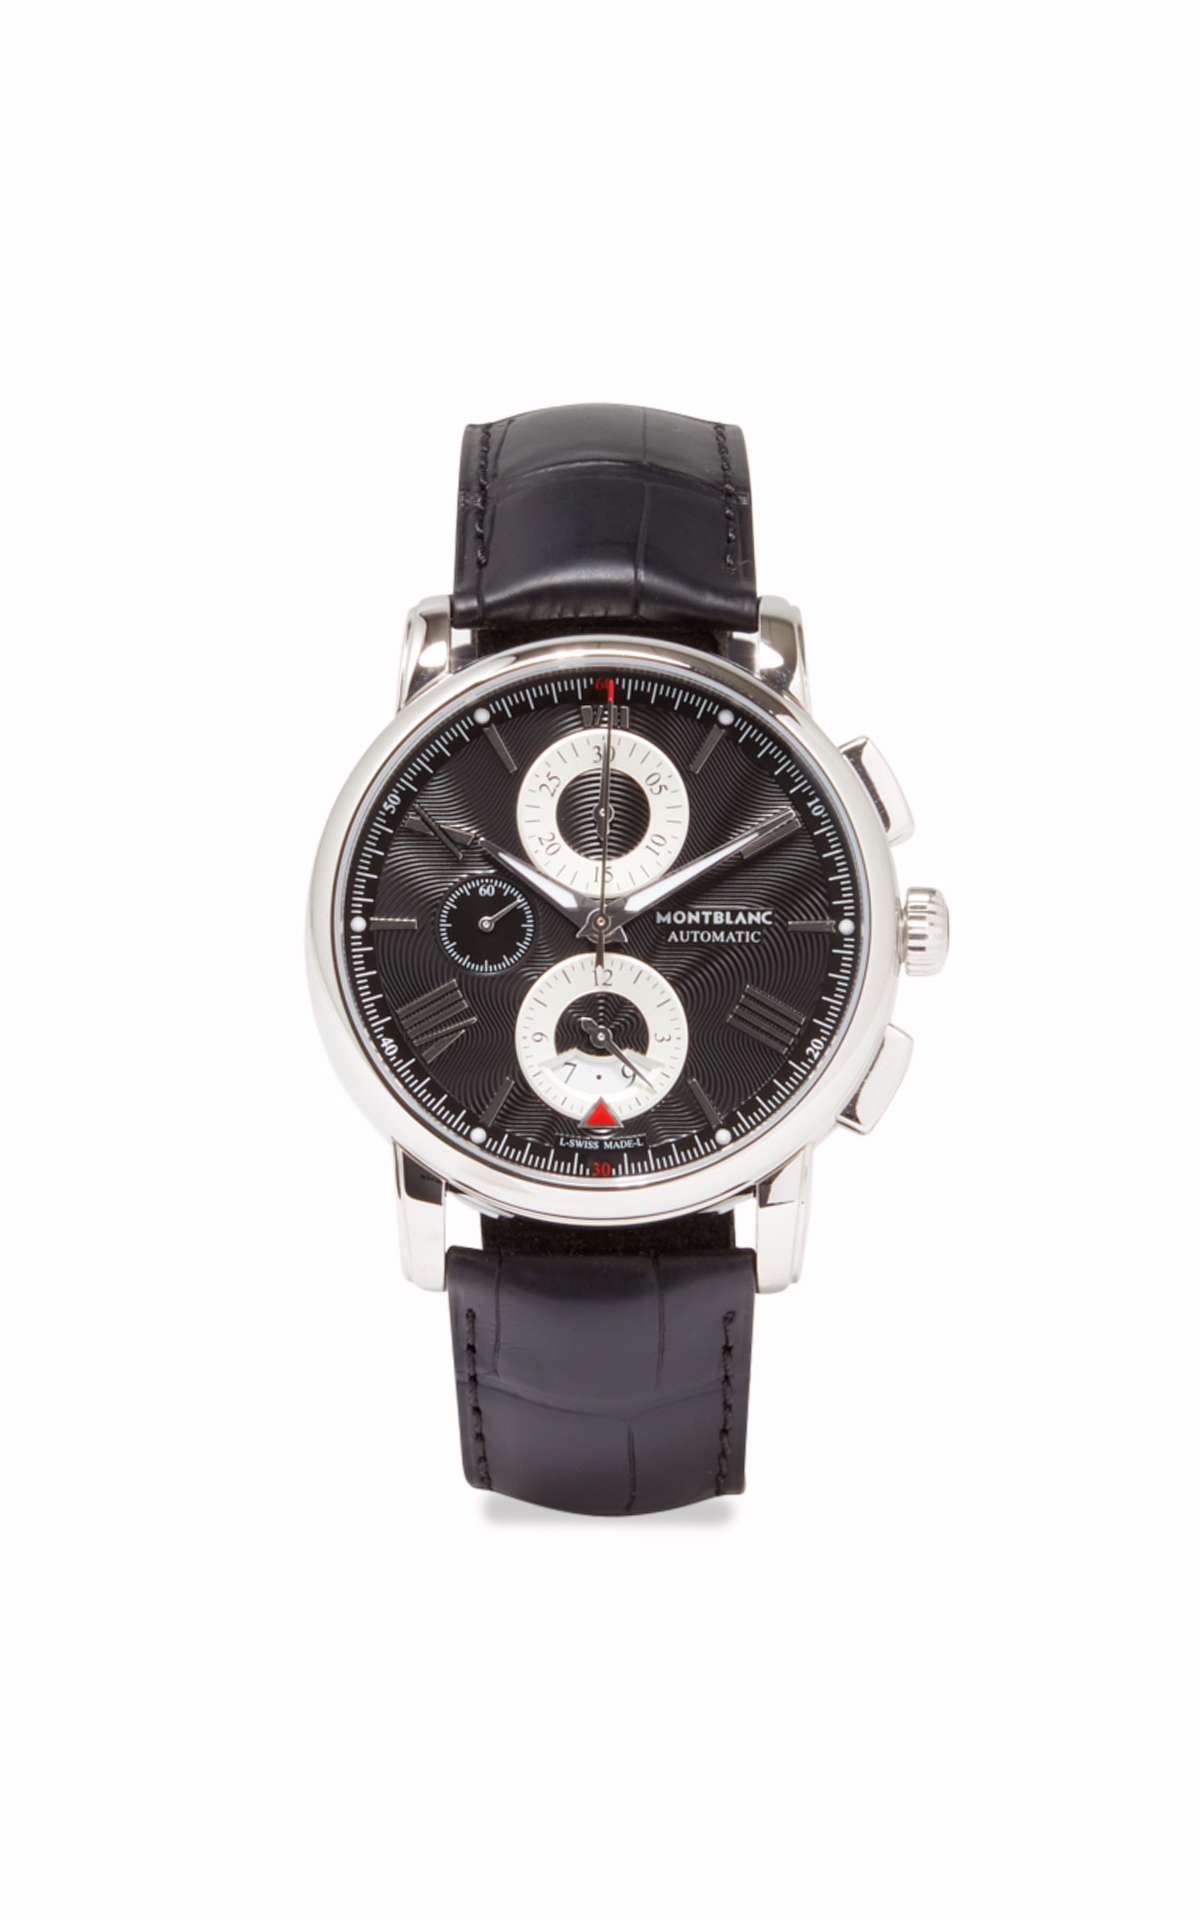 Montblanc Men's leather watch*